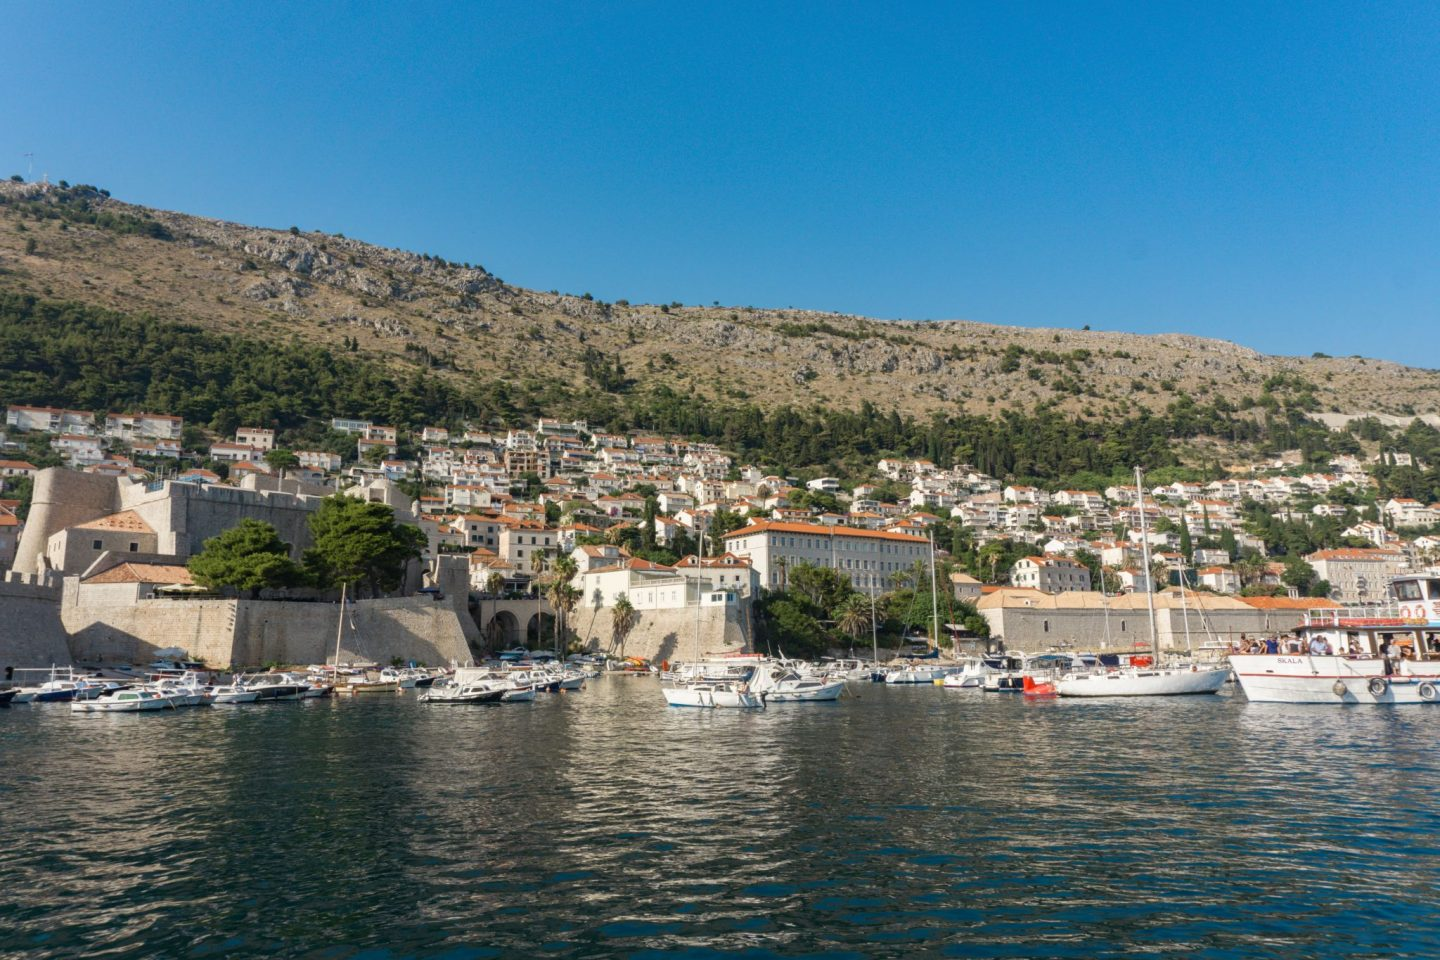 Travel Croatia Three Islands Tour Elafiti islands day trip Dubrovnik City Guide Internal Harbour Dubrovnik City Walls Nadia El Ferdaoussi the daily s'elf